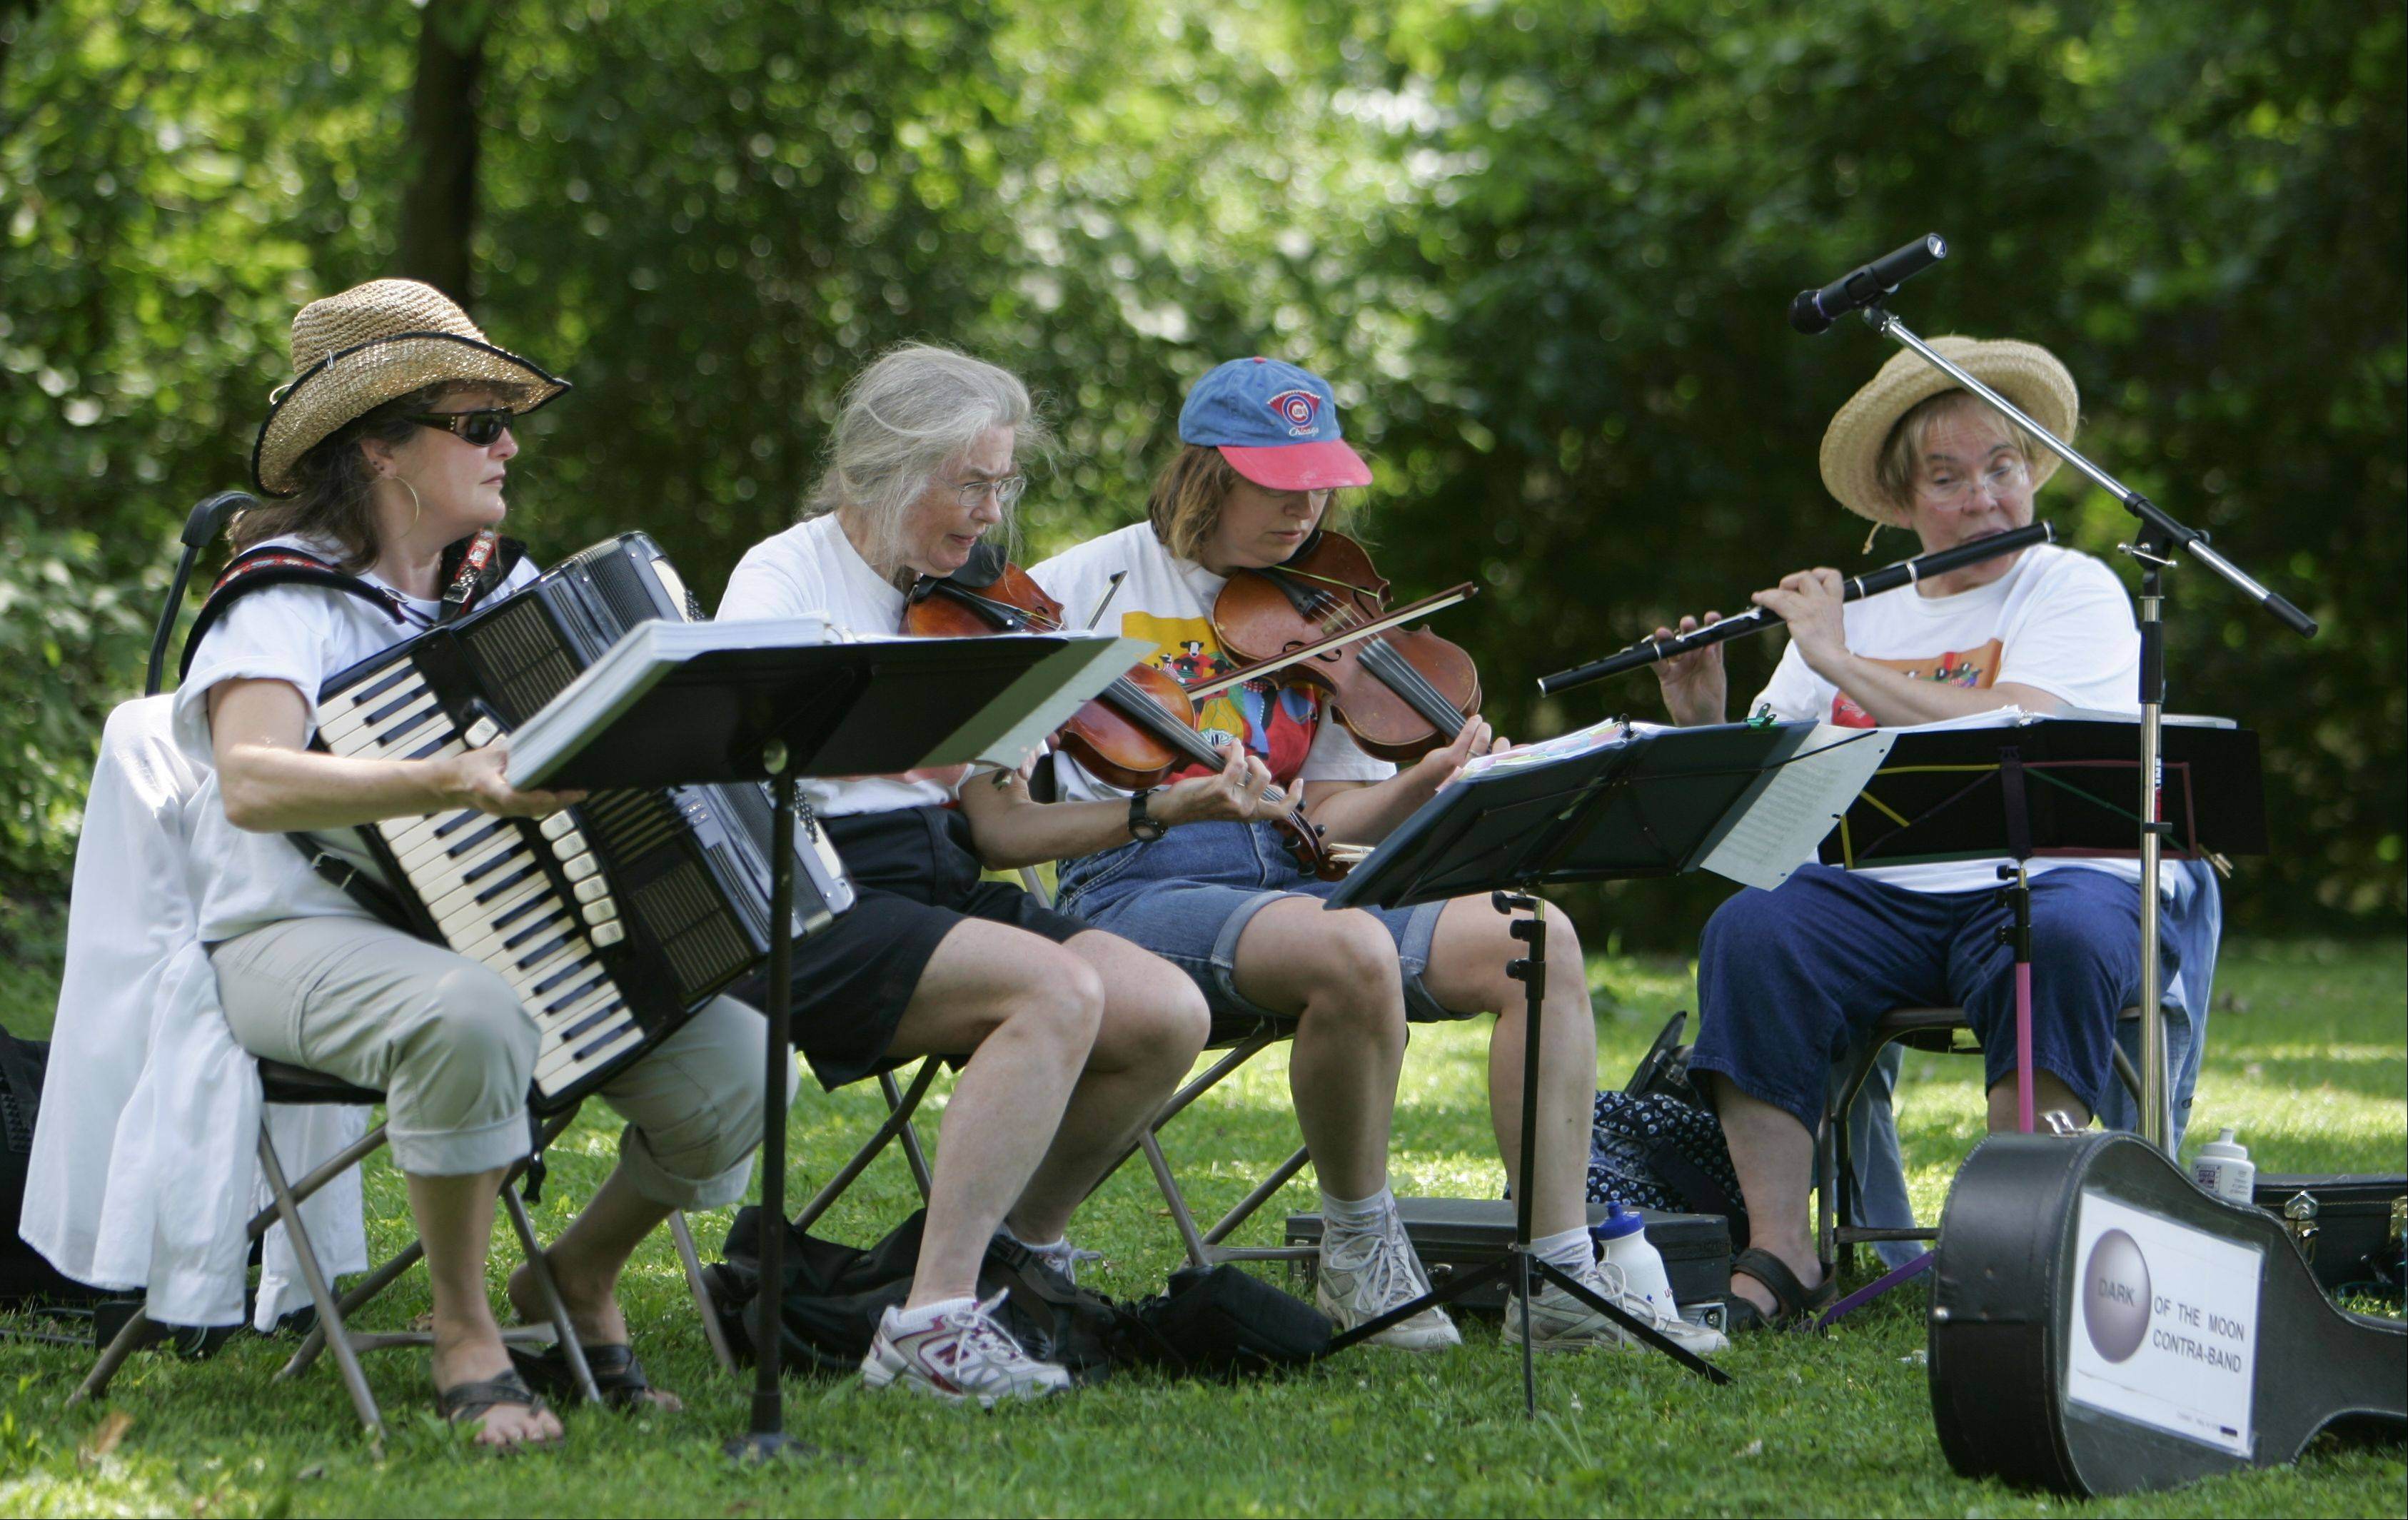 Nordic musical groups will entertain at the eighth annual Scandinavian Midsommar Festival at Vasa Park in South Elgin.